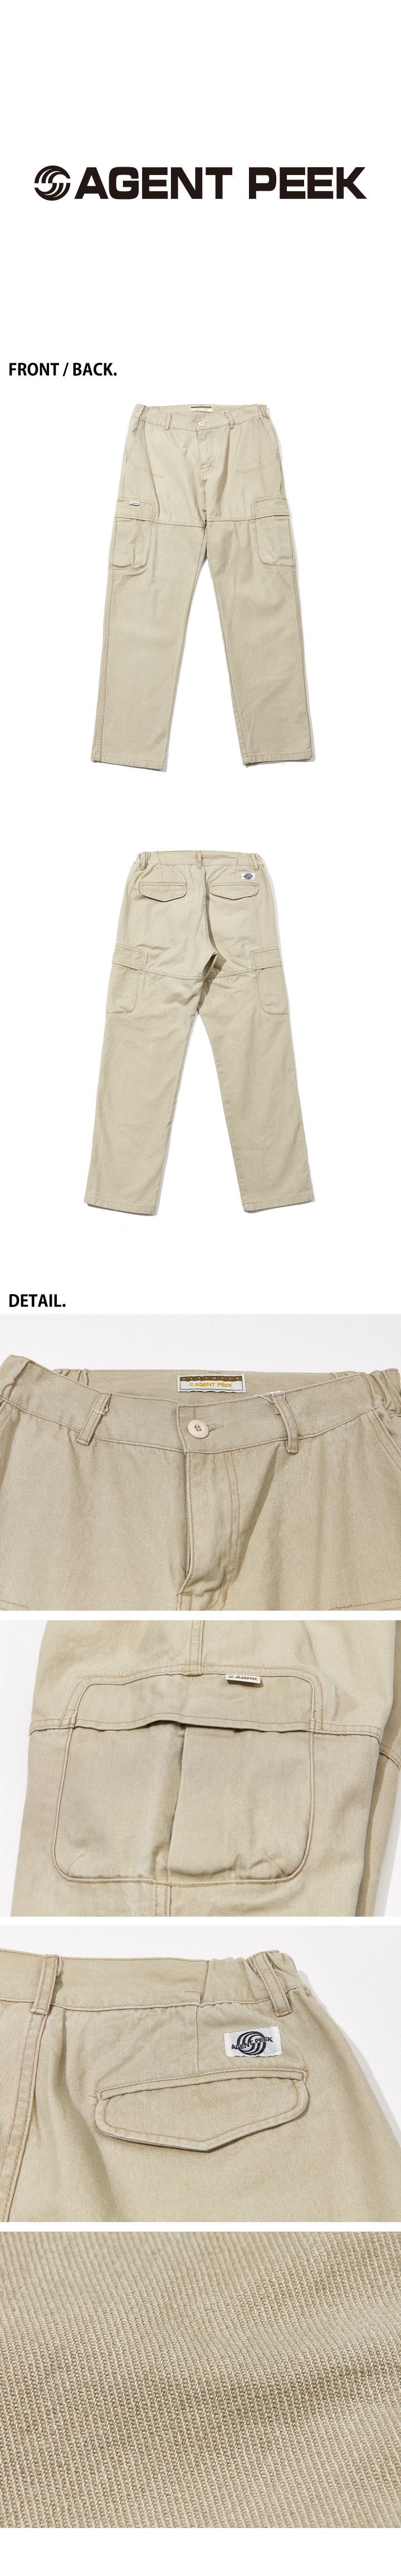 03_POCKETPANTS_BEIGE.jpg